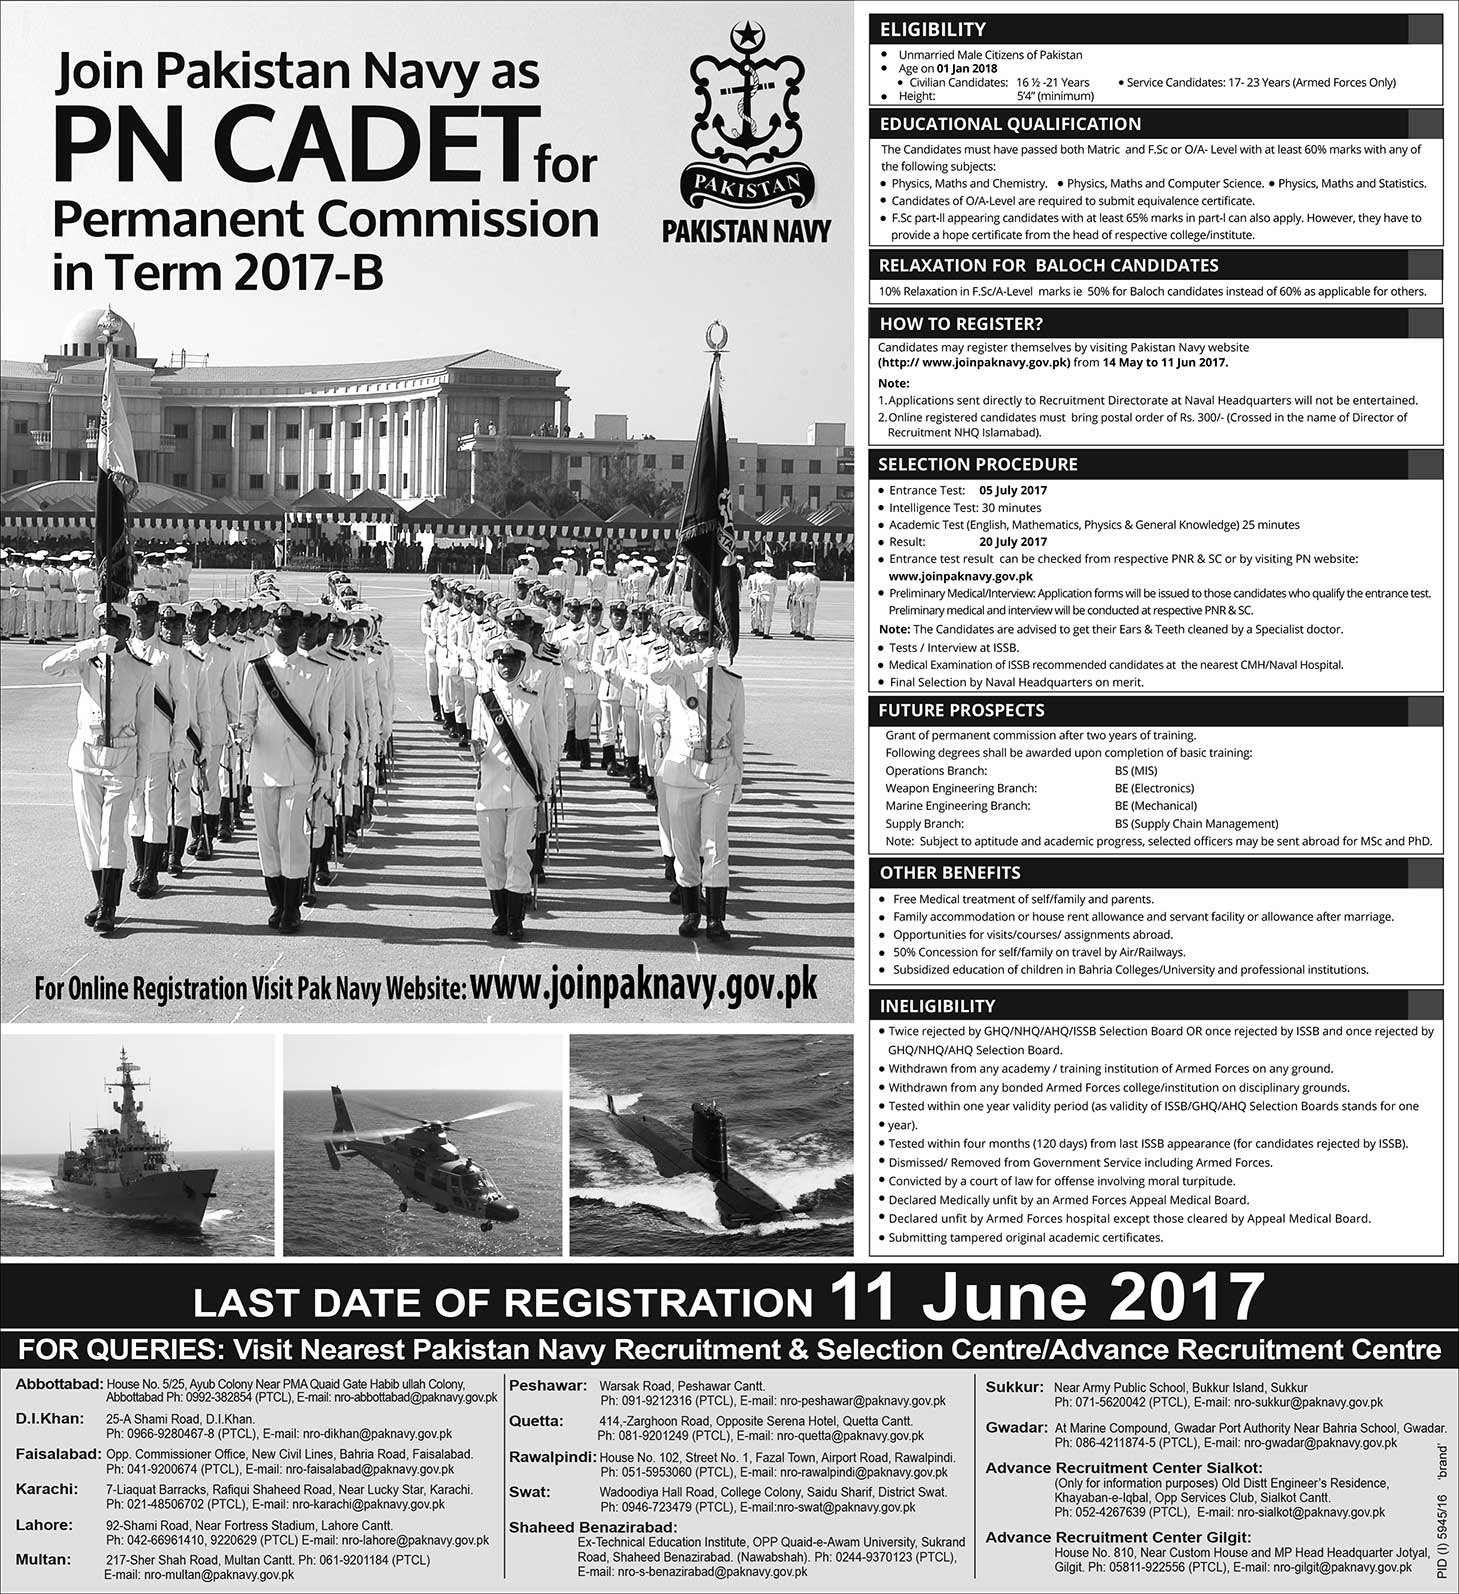 Join Pak Navy PN cadet Permanent commissioned